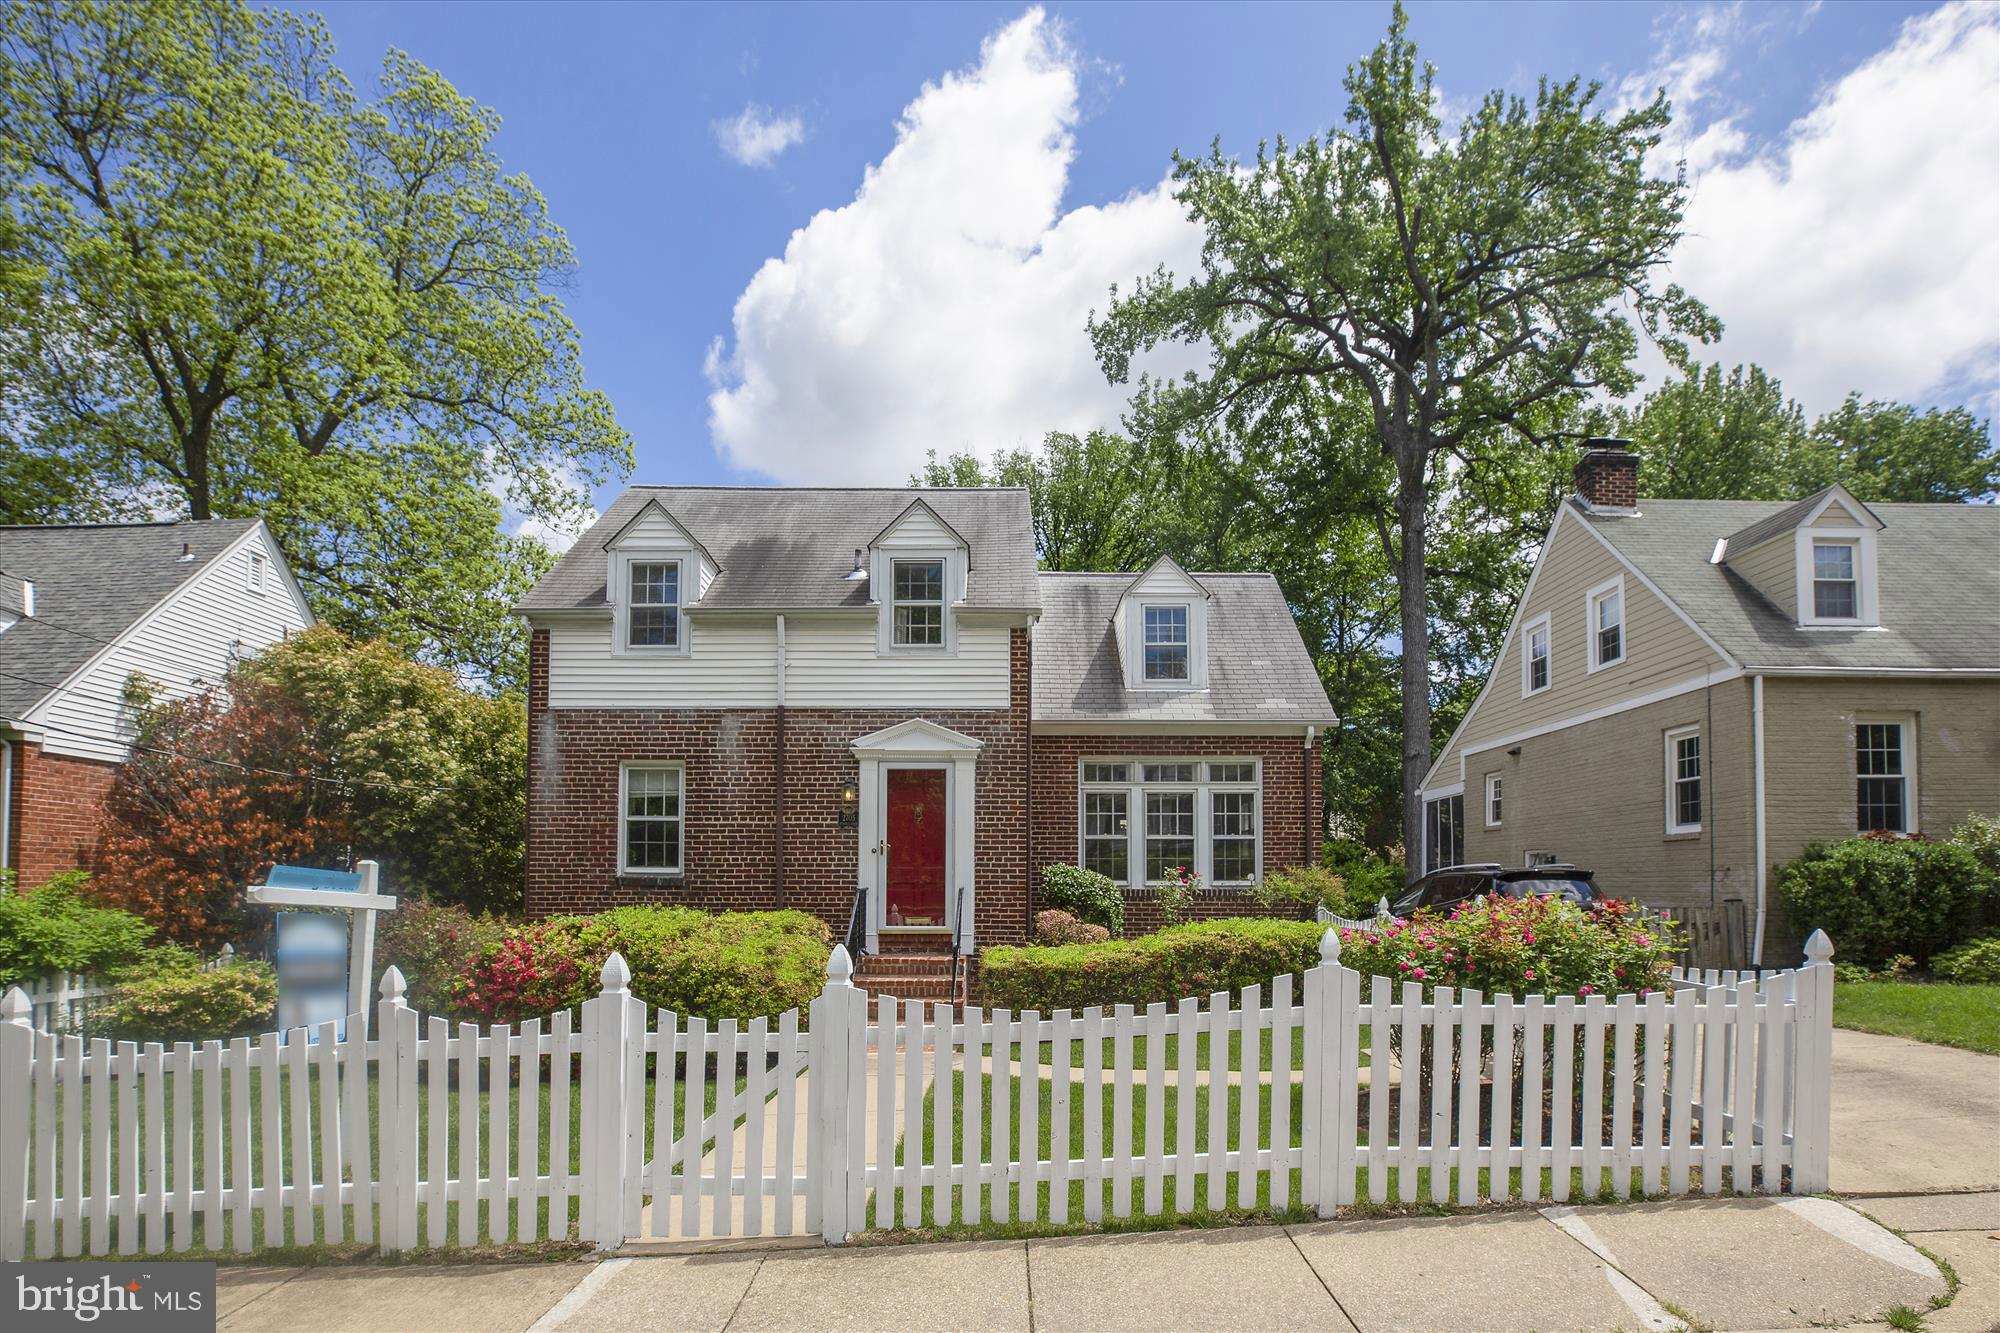 Beautifully updated, renovated brick Cape Cod not far from Shirlington between Mansion Drive and Del Ray. When you enter this charming home, the first thing you will notice is the newly refinished wood flooring, which flows throughout the main and upper levels. The sun filled living room is lit by multiple windows and features a cozy wood burning fireplace and hardwood mantle. Freshly painted throughout.  A bright white kitchen with new granite counter tops along with gas cooking make meal preparation a pleasure. The upper level boasts three bedrooms with full bath. The two full bathrooms have both been renovated with tile and elegant fixtures. The main level has a bedroom/office which overlooks the tranquil backyard and access to the rear deck. Sit and read or just relax on the private deck. In the spacious lower level, you will find the family room, rec room, and laundry room. Abundant storage throughout. Fantastic location close to I-395, Old Town Alexandria, King Street and Braddock Road Metro Stations, minutes to Arlington, Crystal City and Washington DC.